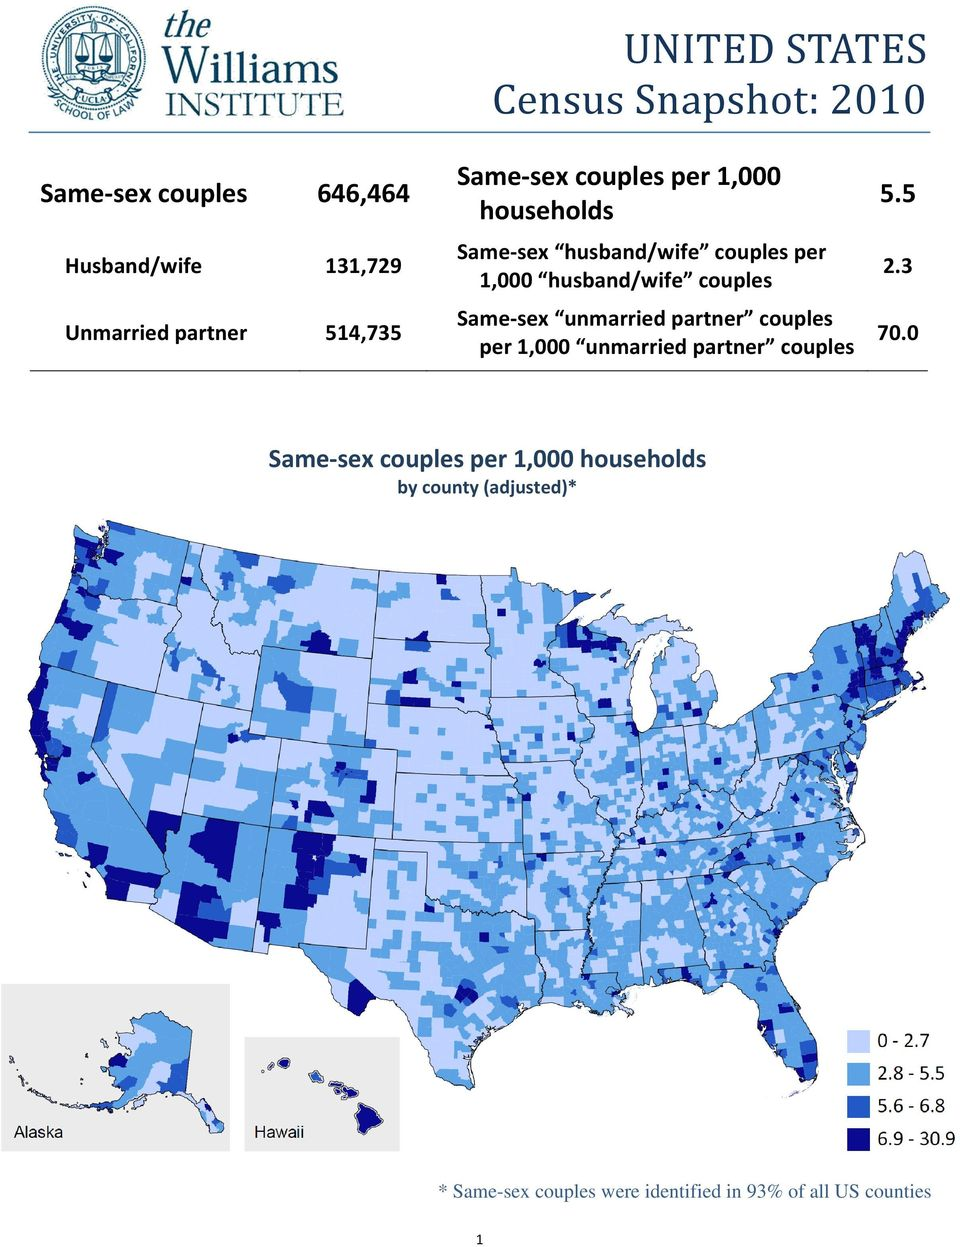 husband/wife unmarried partner per 1,000 unmarried partner 5.5 2.